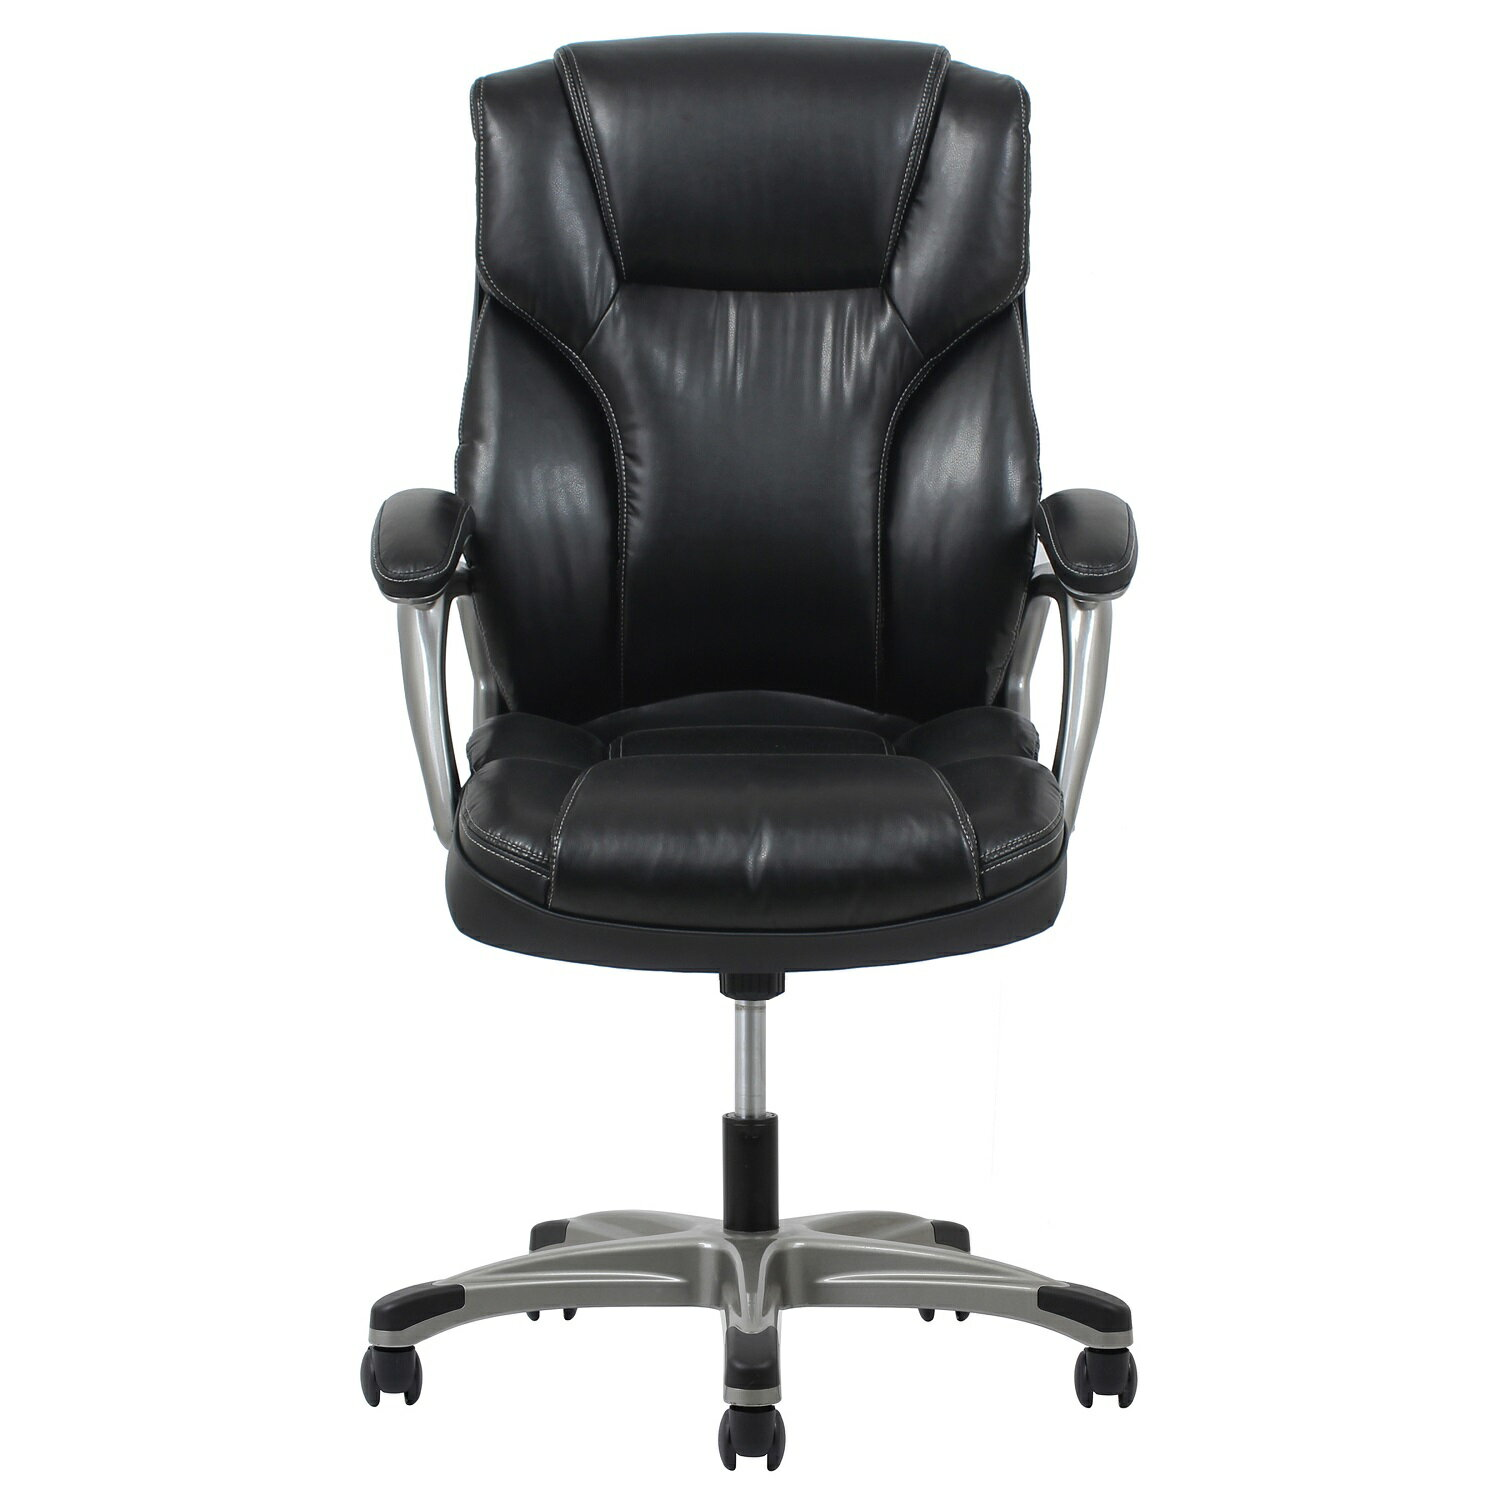 office essentials essentials by ofm ess 6030 high back leather